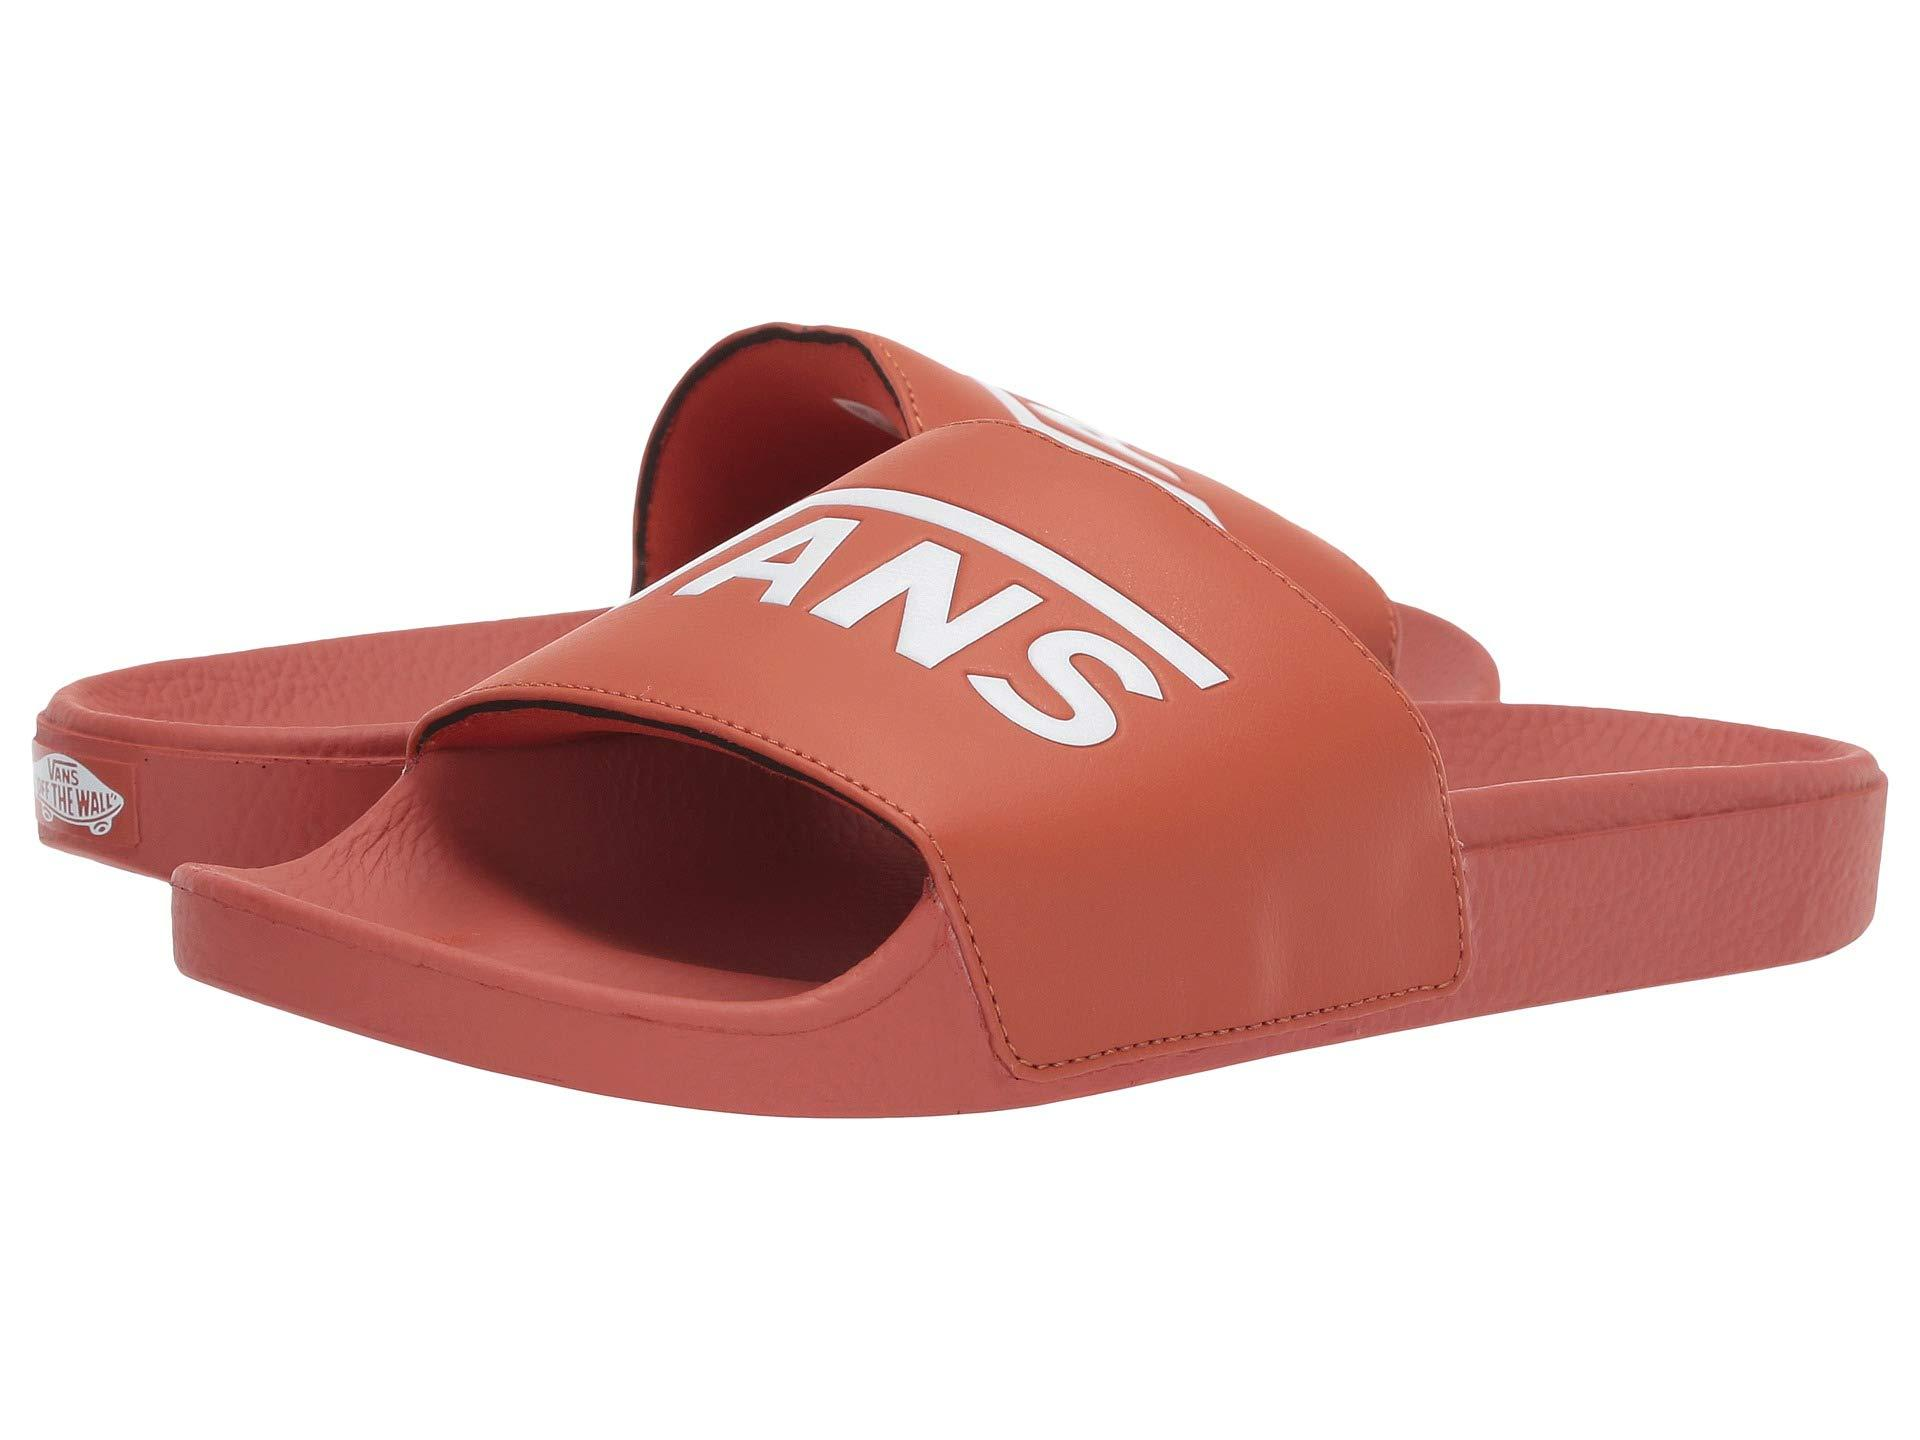 8537c4238c62e Lyst - Vans Slide-on (() Potters Clay) Slide Shoes in Red for Men